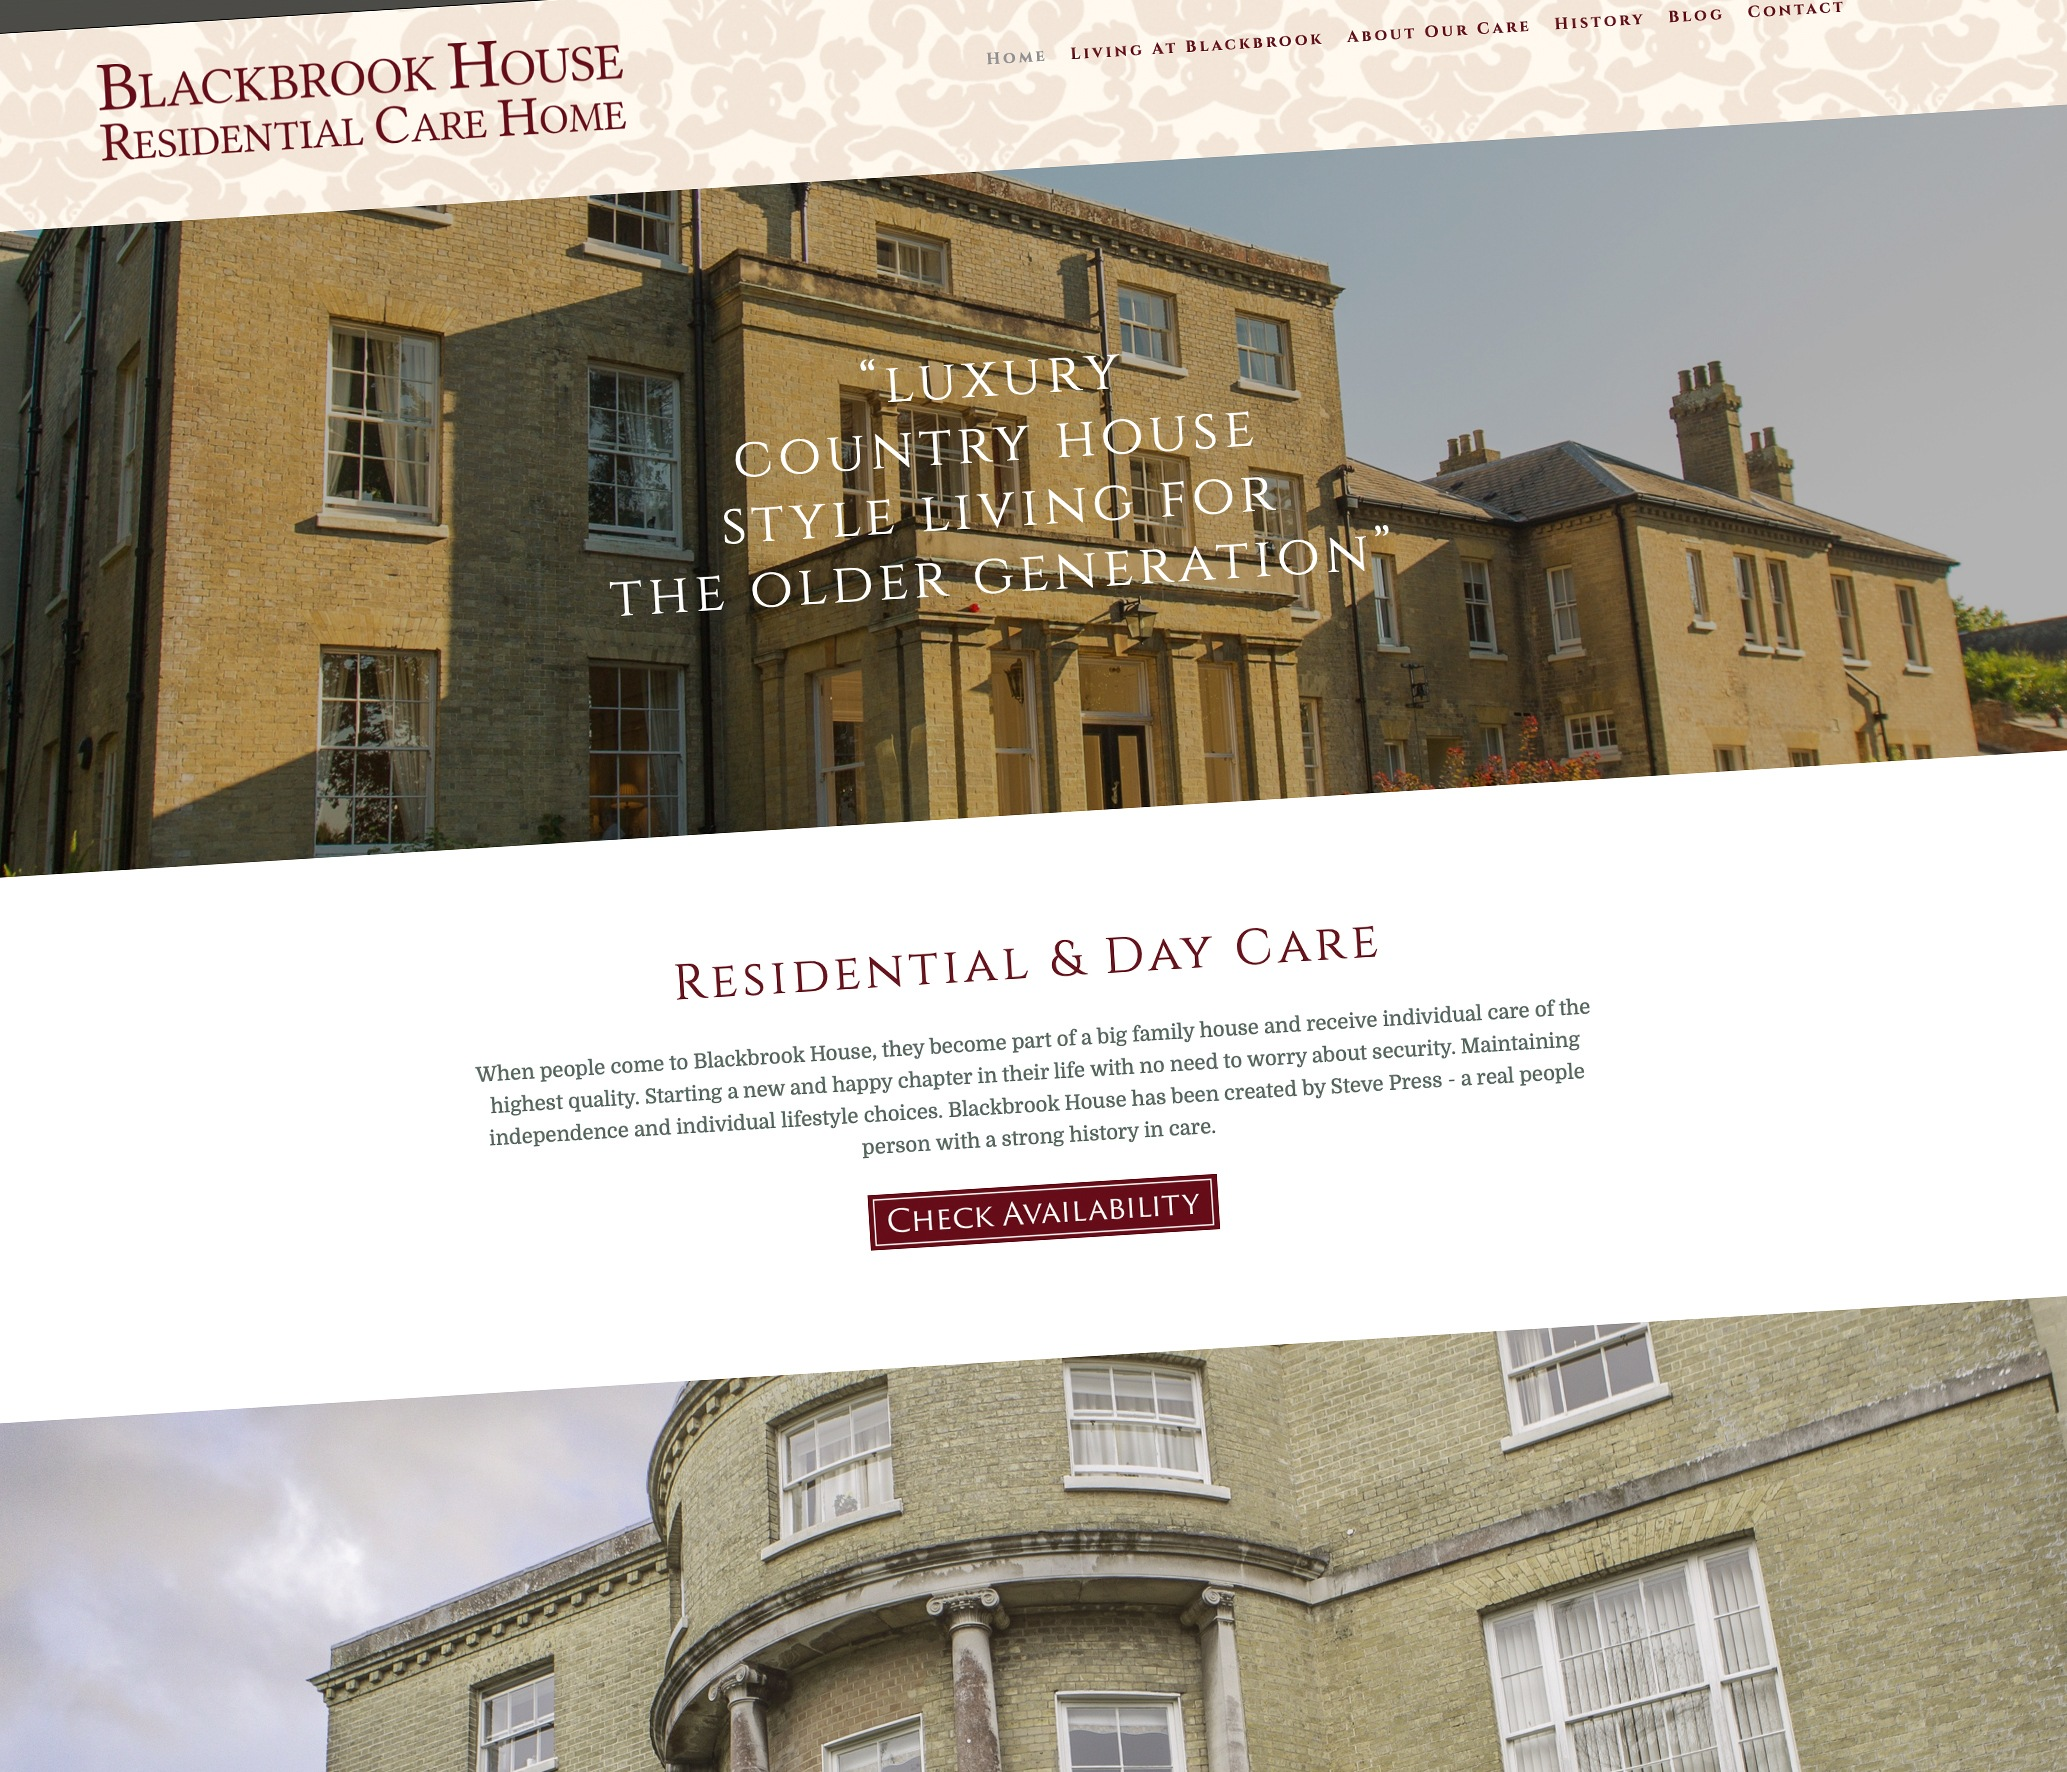 Ceratopia Web Design For Blackbrook House Residential Care Home